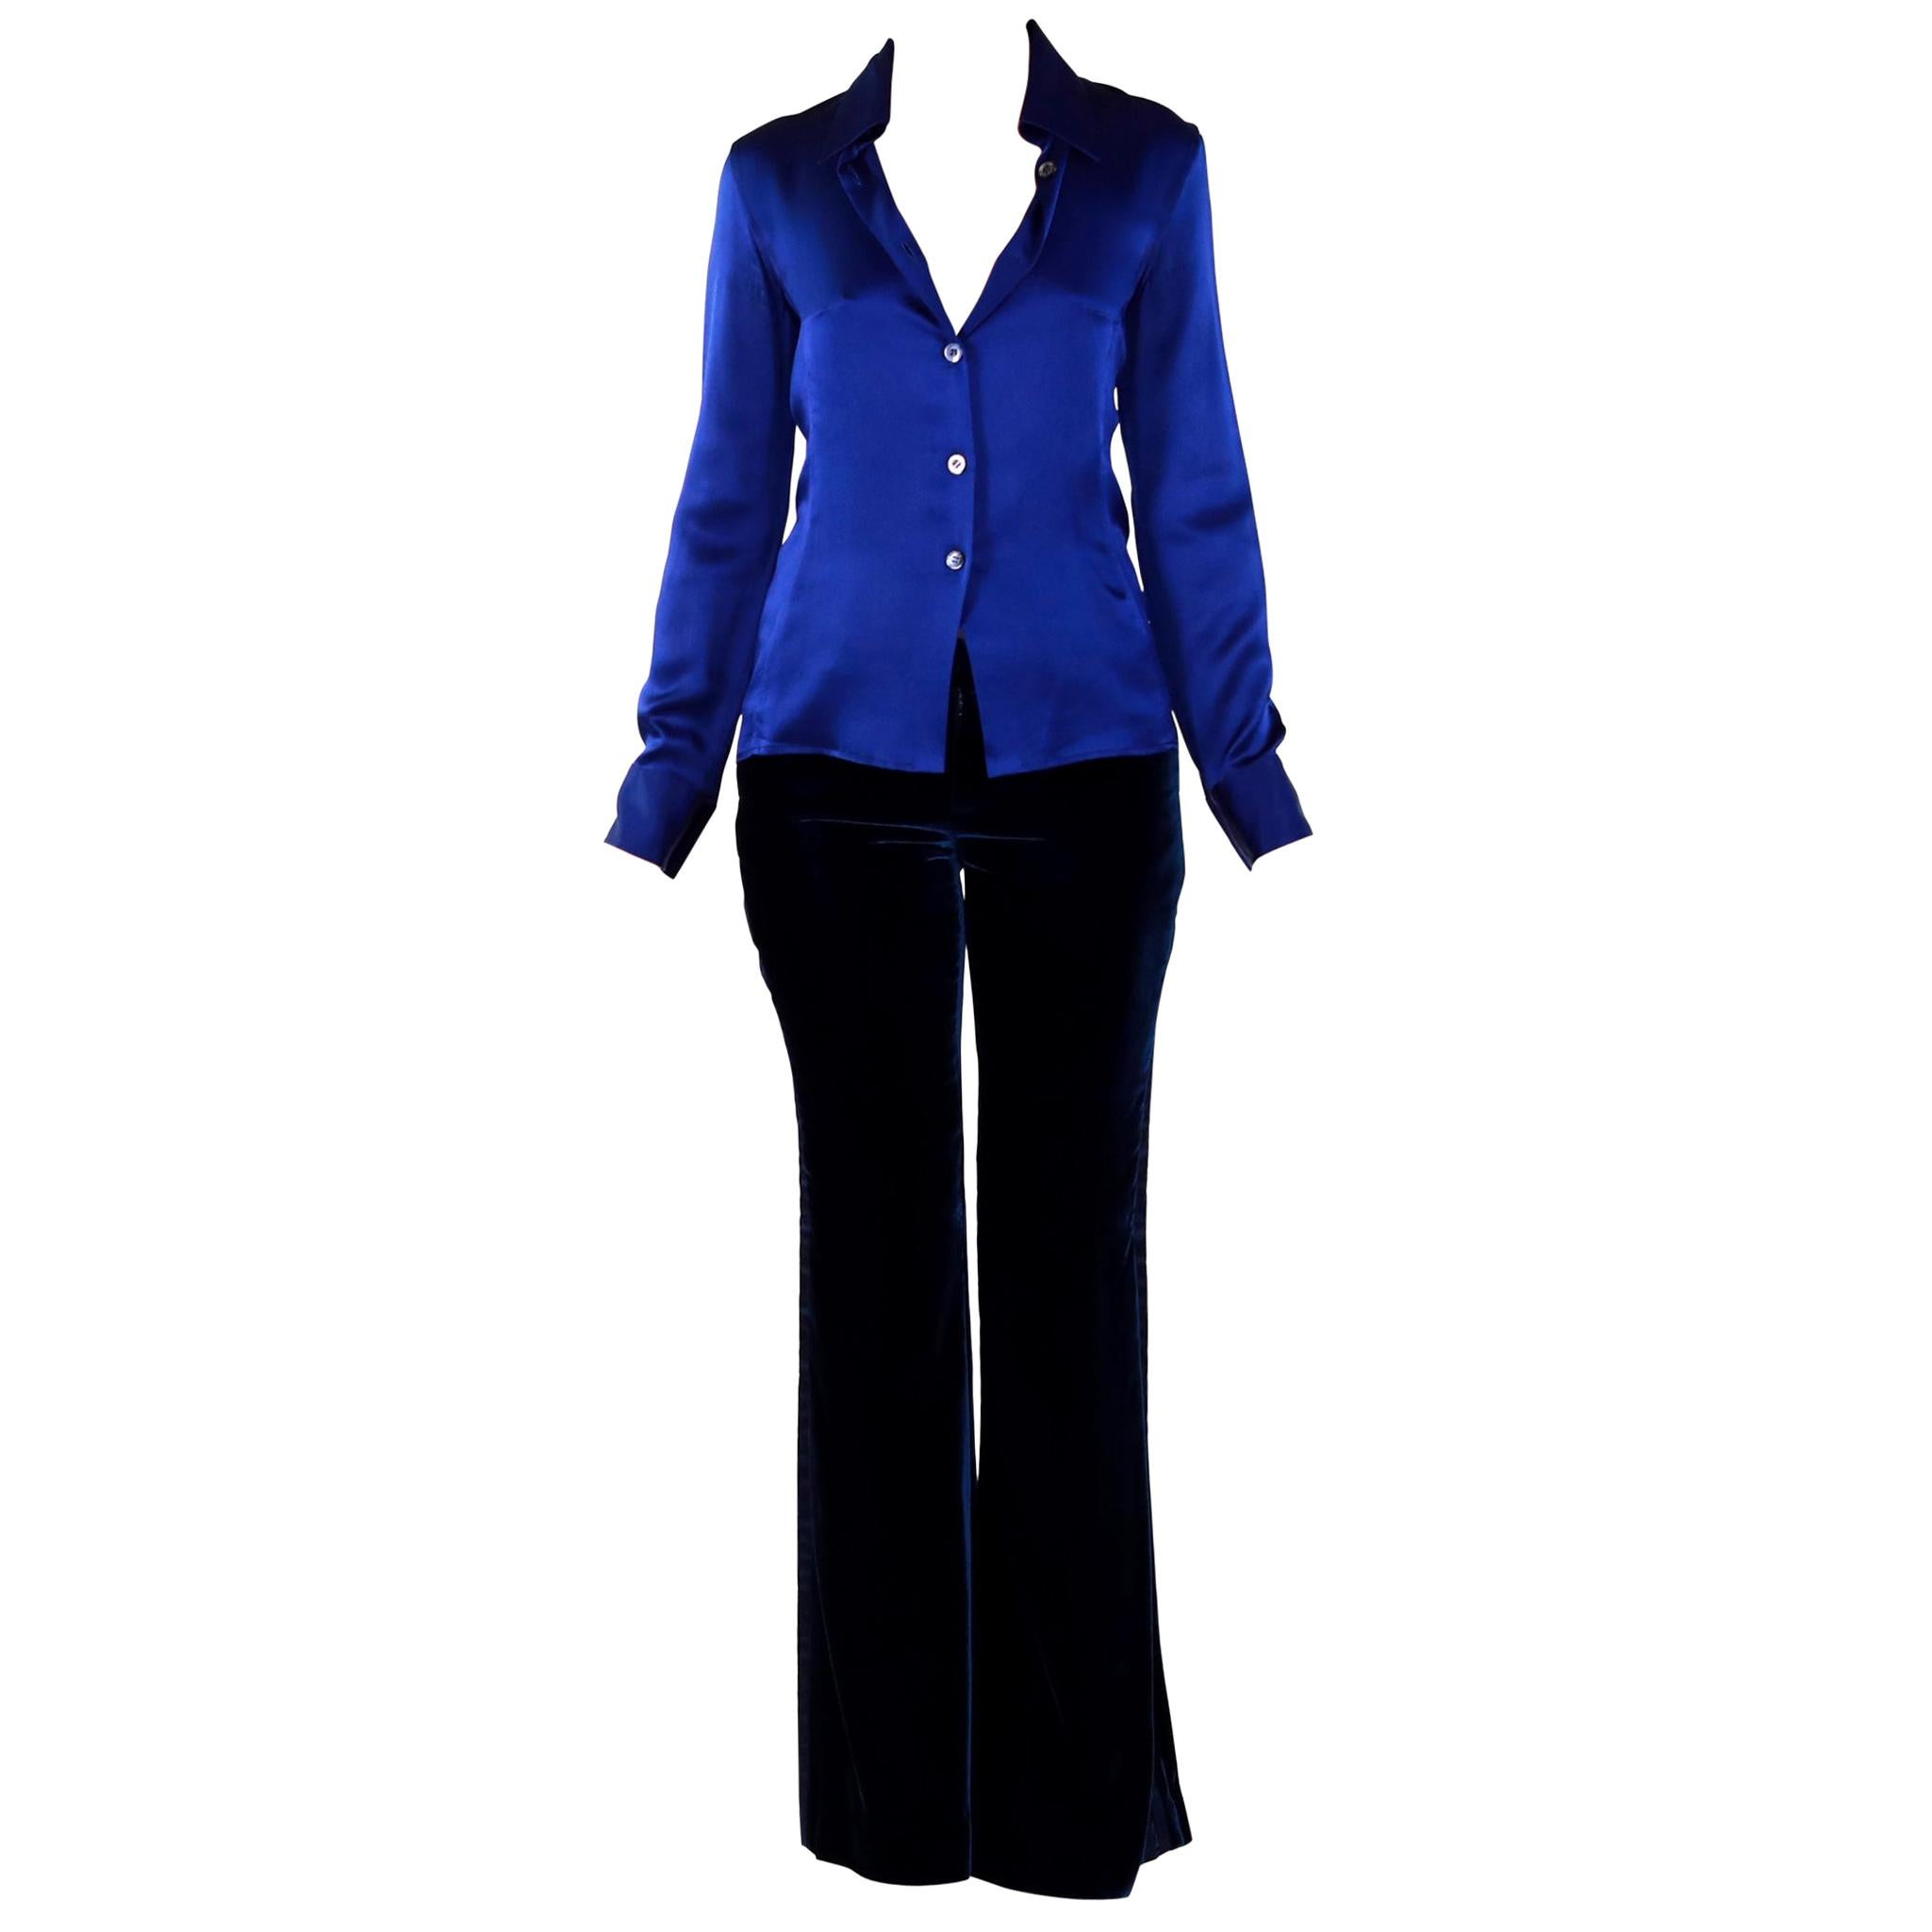 '95 VINTAGE TOM FORD for GUCCI SILK SHIRT + '04 VELVET PANT as seen Sep InStyle